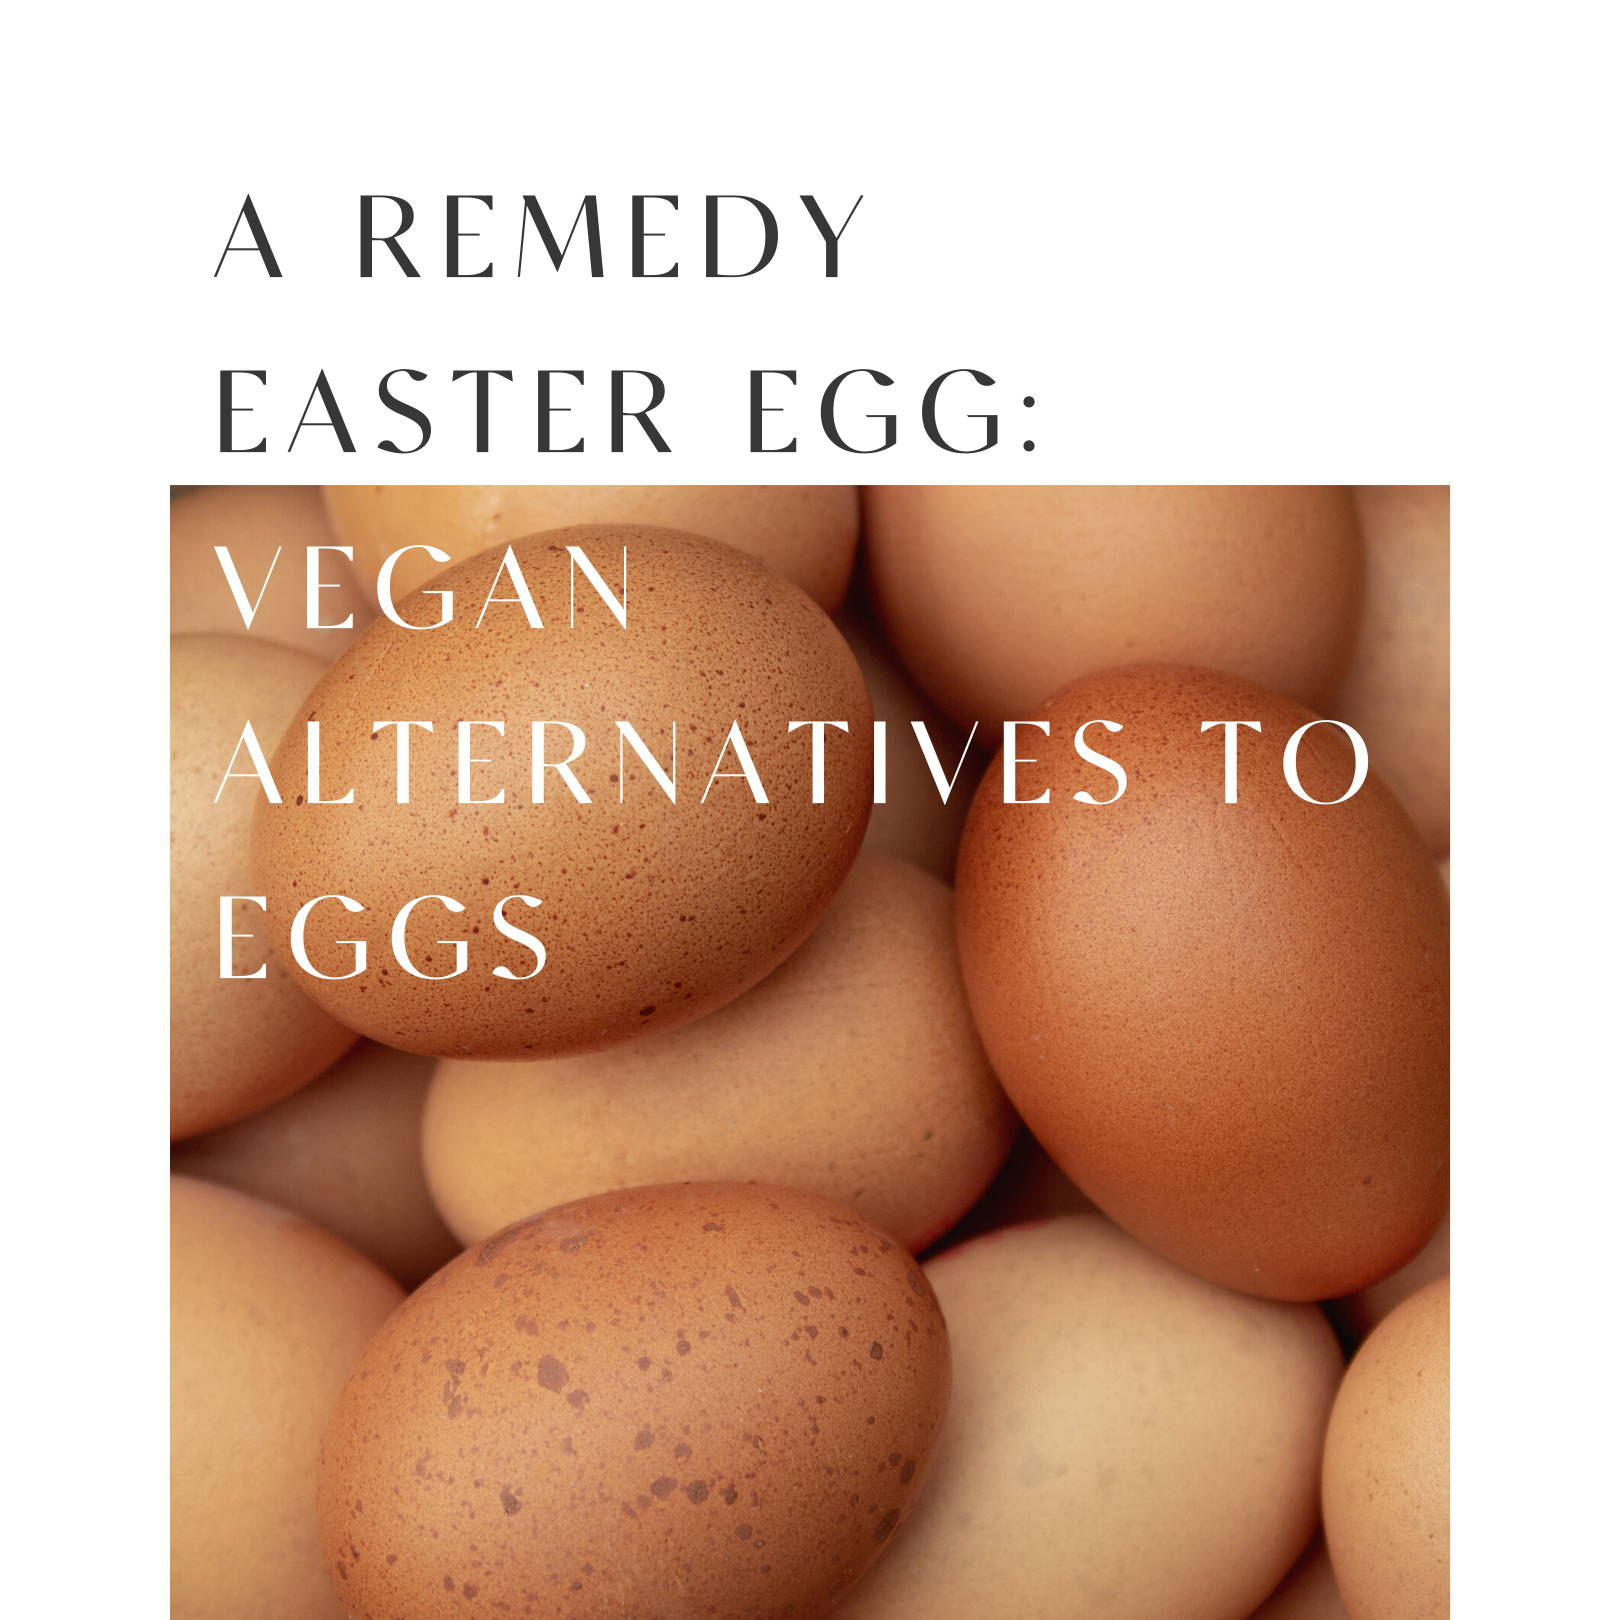 A Remedy 'Easter Egg': Vegan Alternatives to Eggs